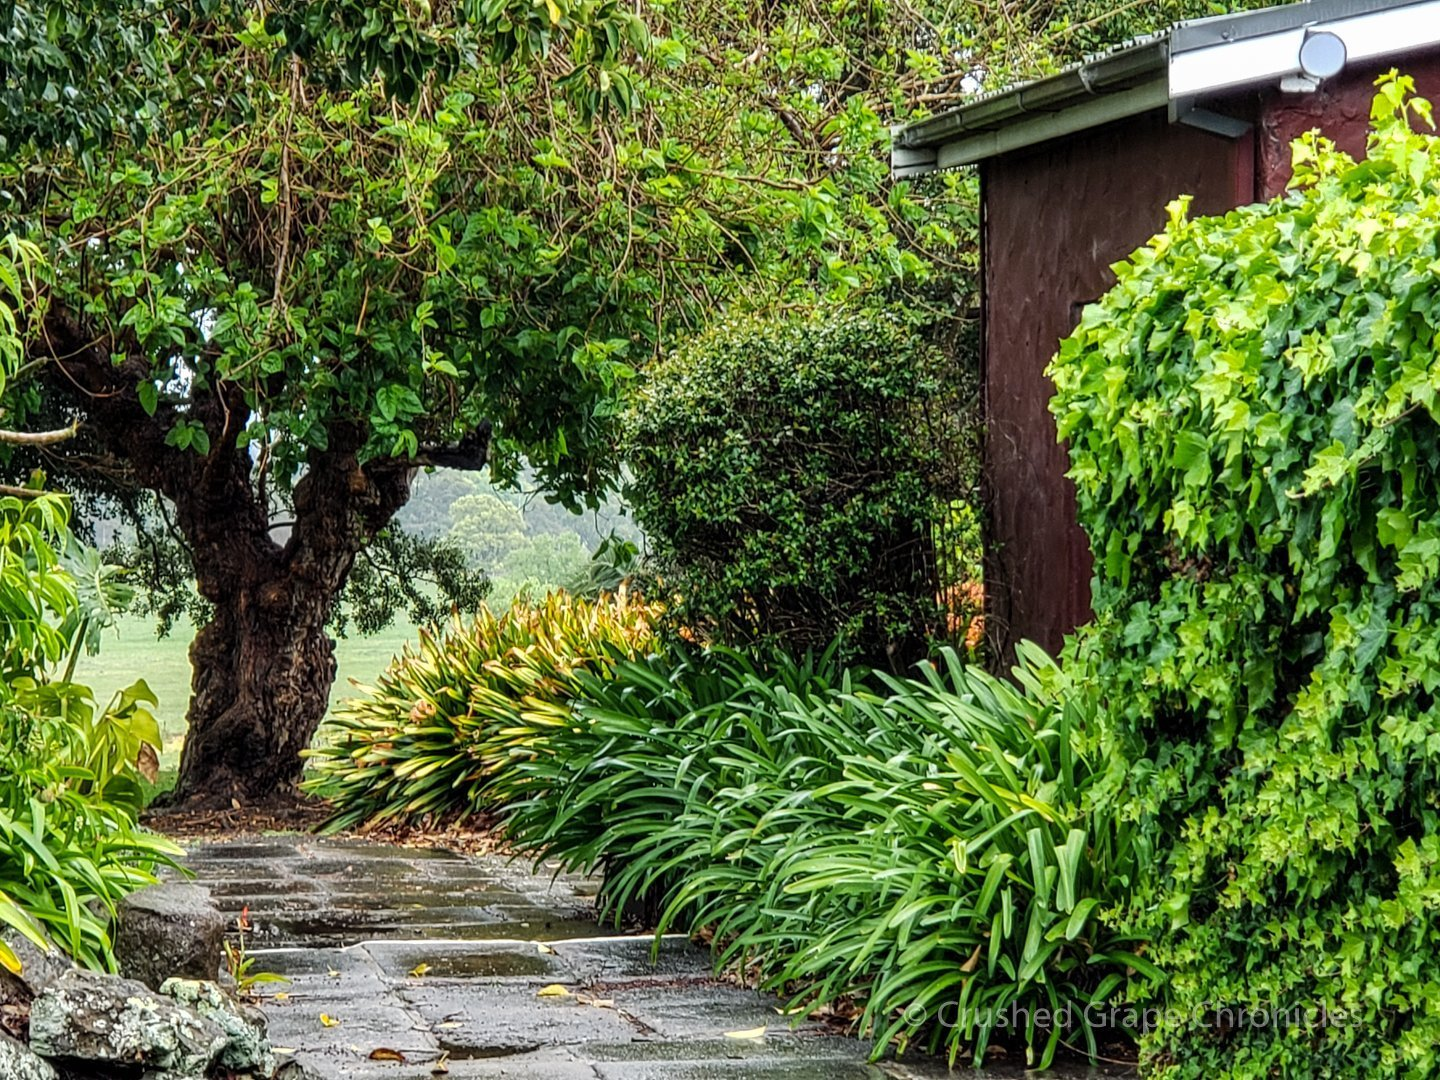 Lush greenery at Coolangatta Estate Shoalhaven Coast New South Wales Australia